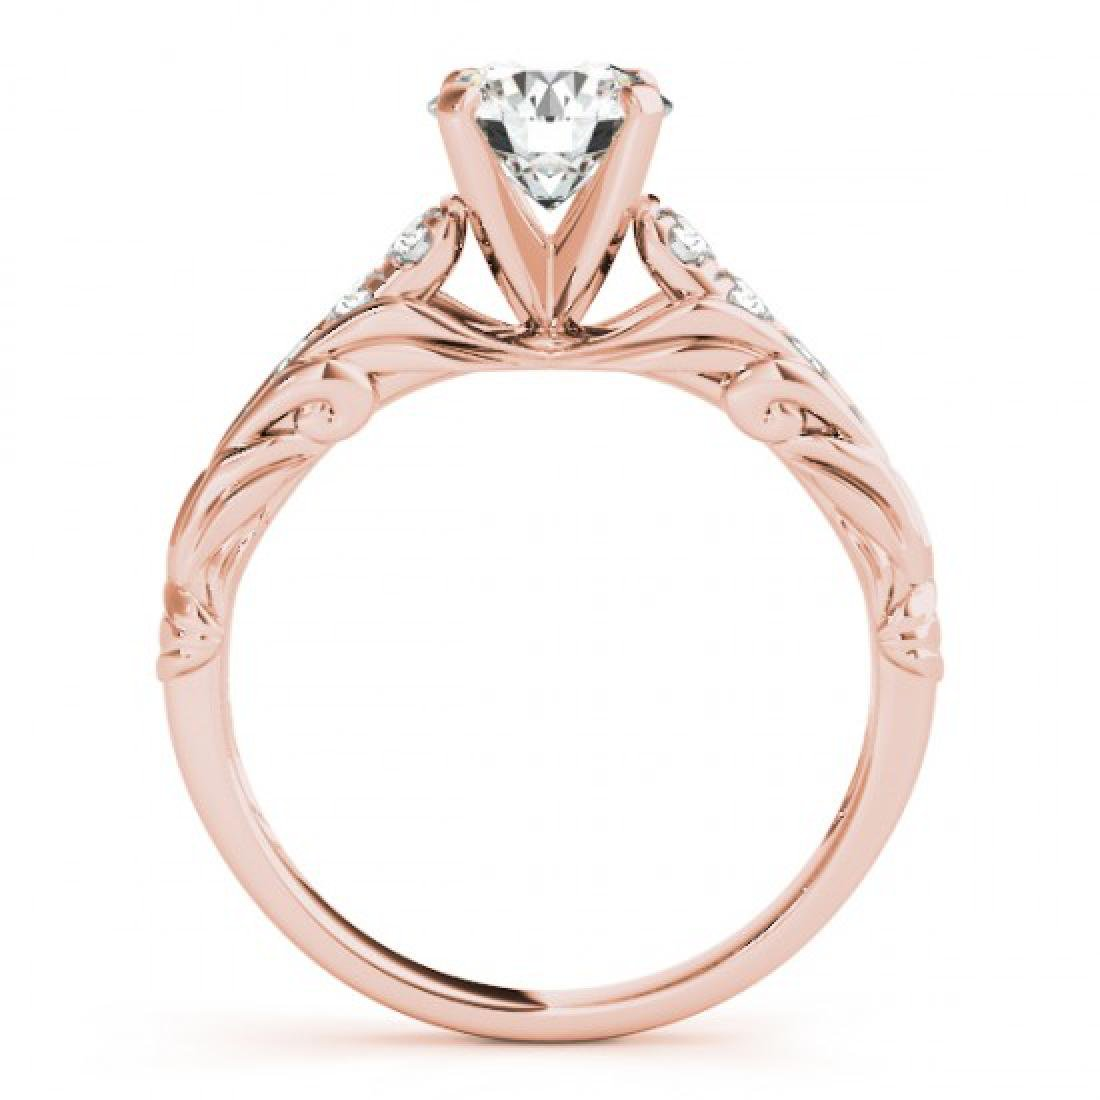 1.2 CTW Certified VS/SI Diamond Solitaire Ring 14K Rose - 2